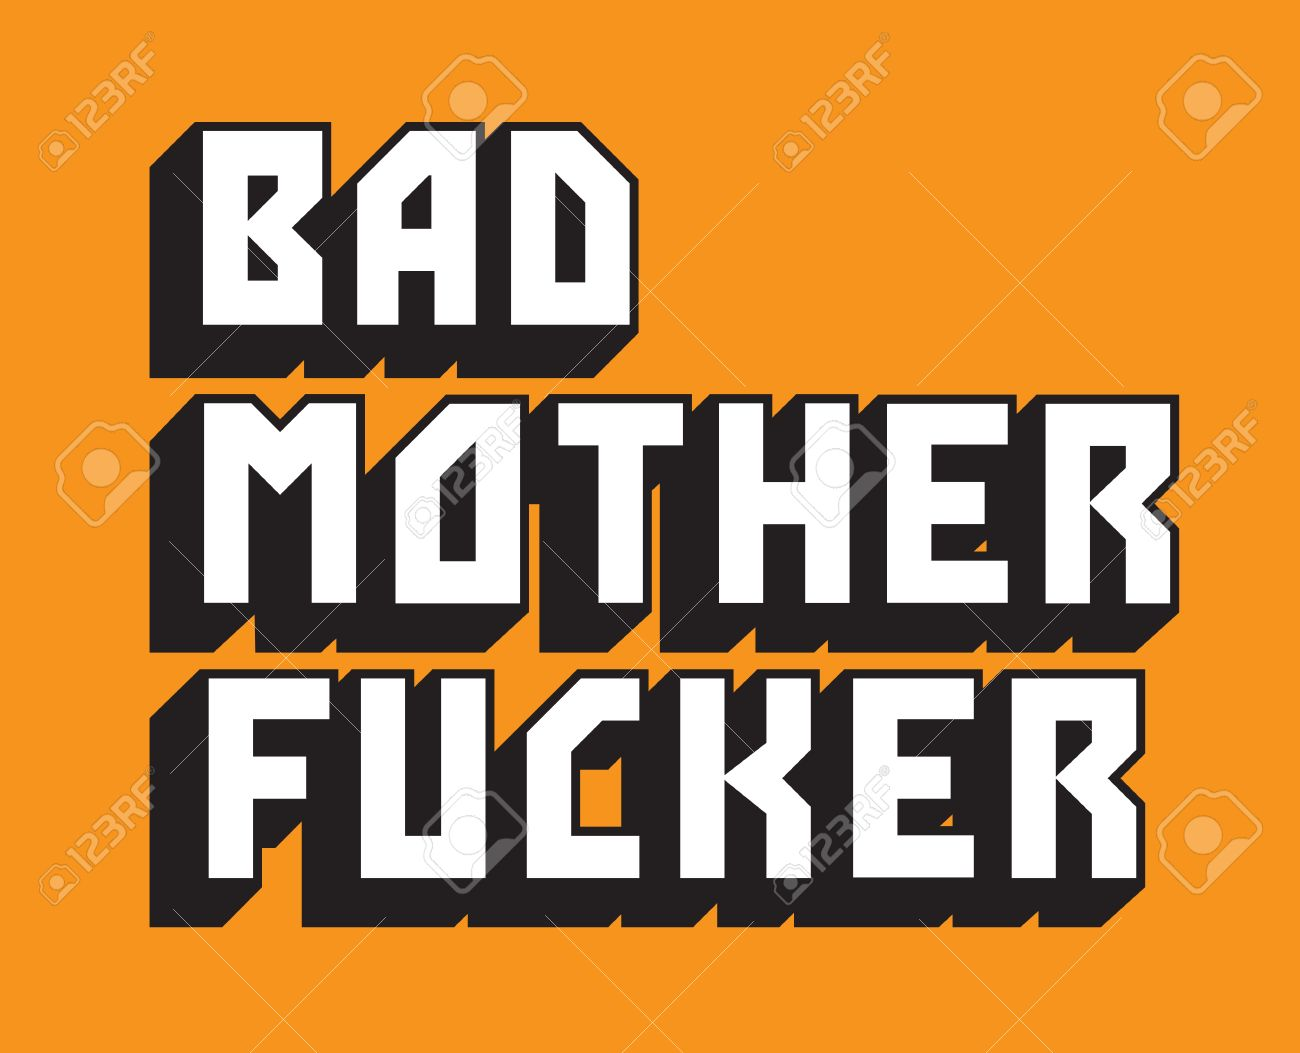 Bad Mother Fucker Custom Vector Text Pulp Fiction Inspired Hand Drawn Of The